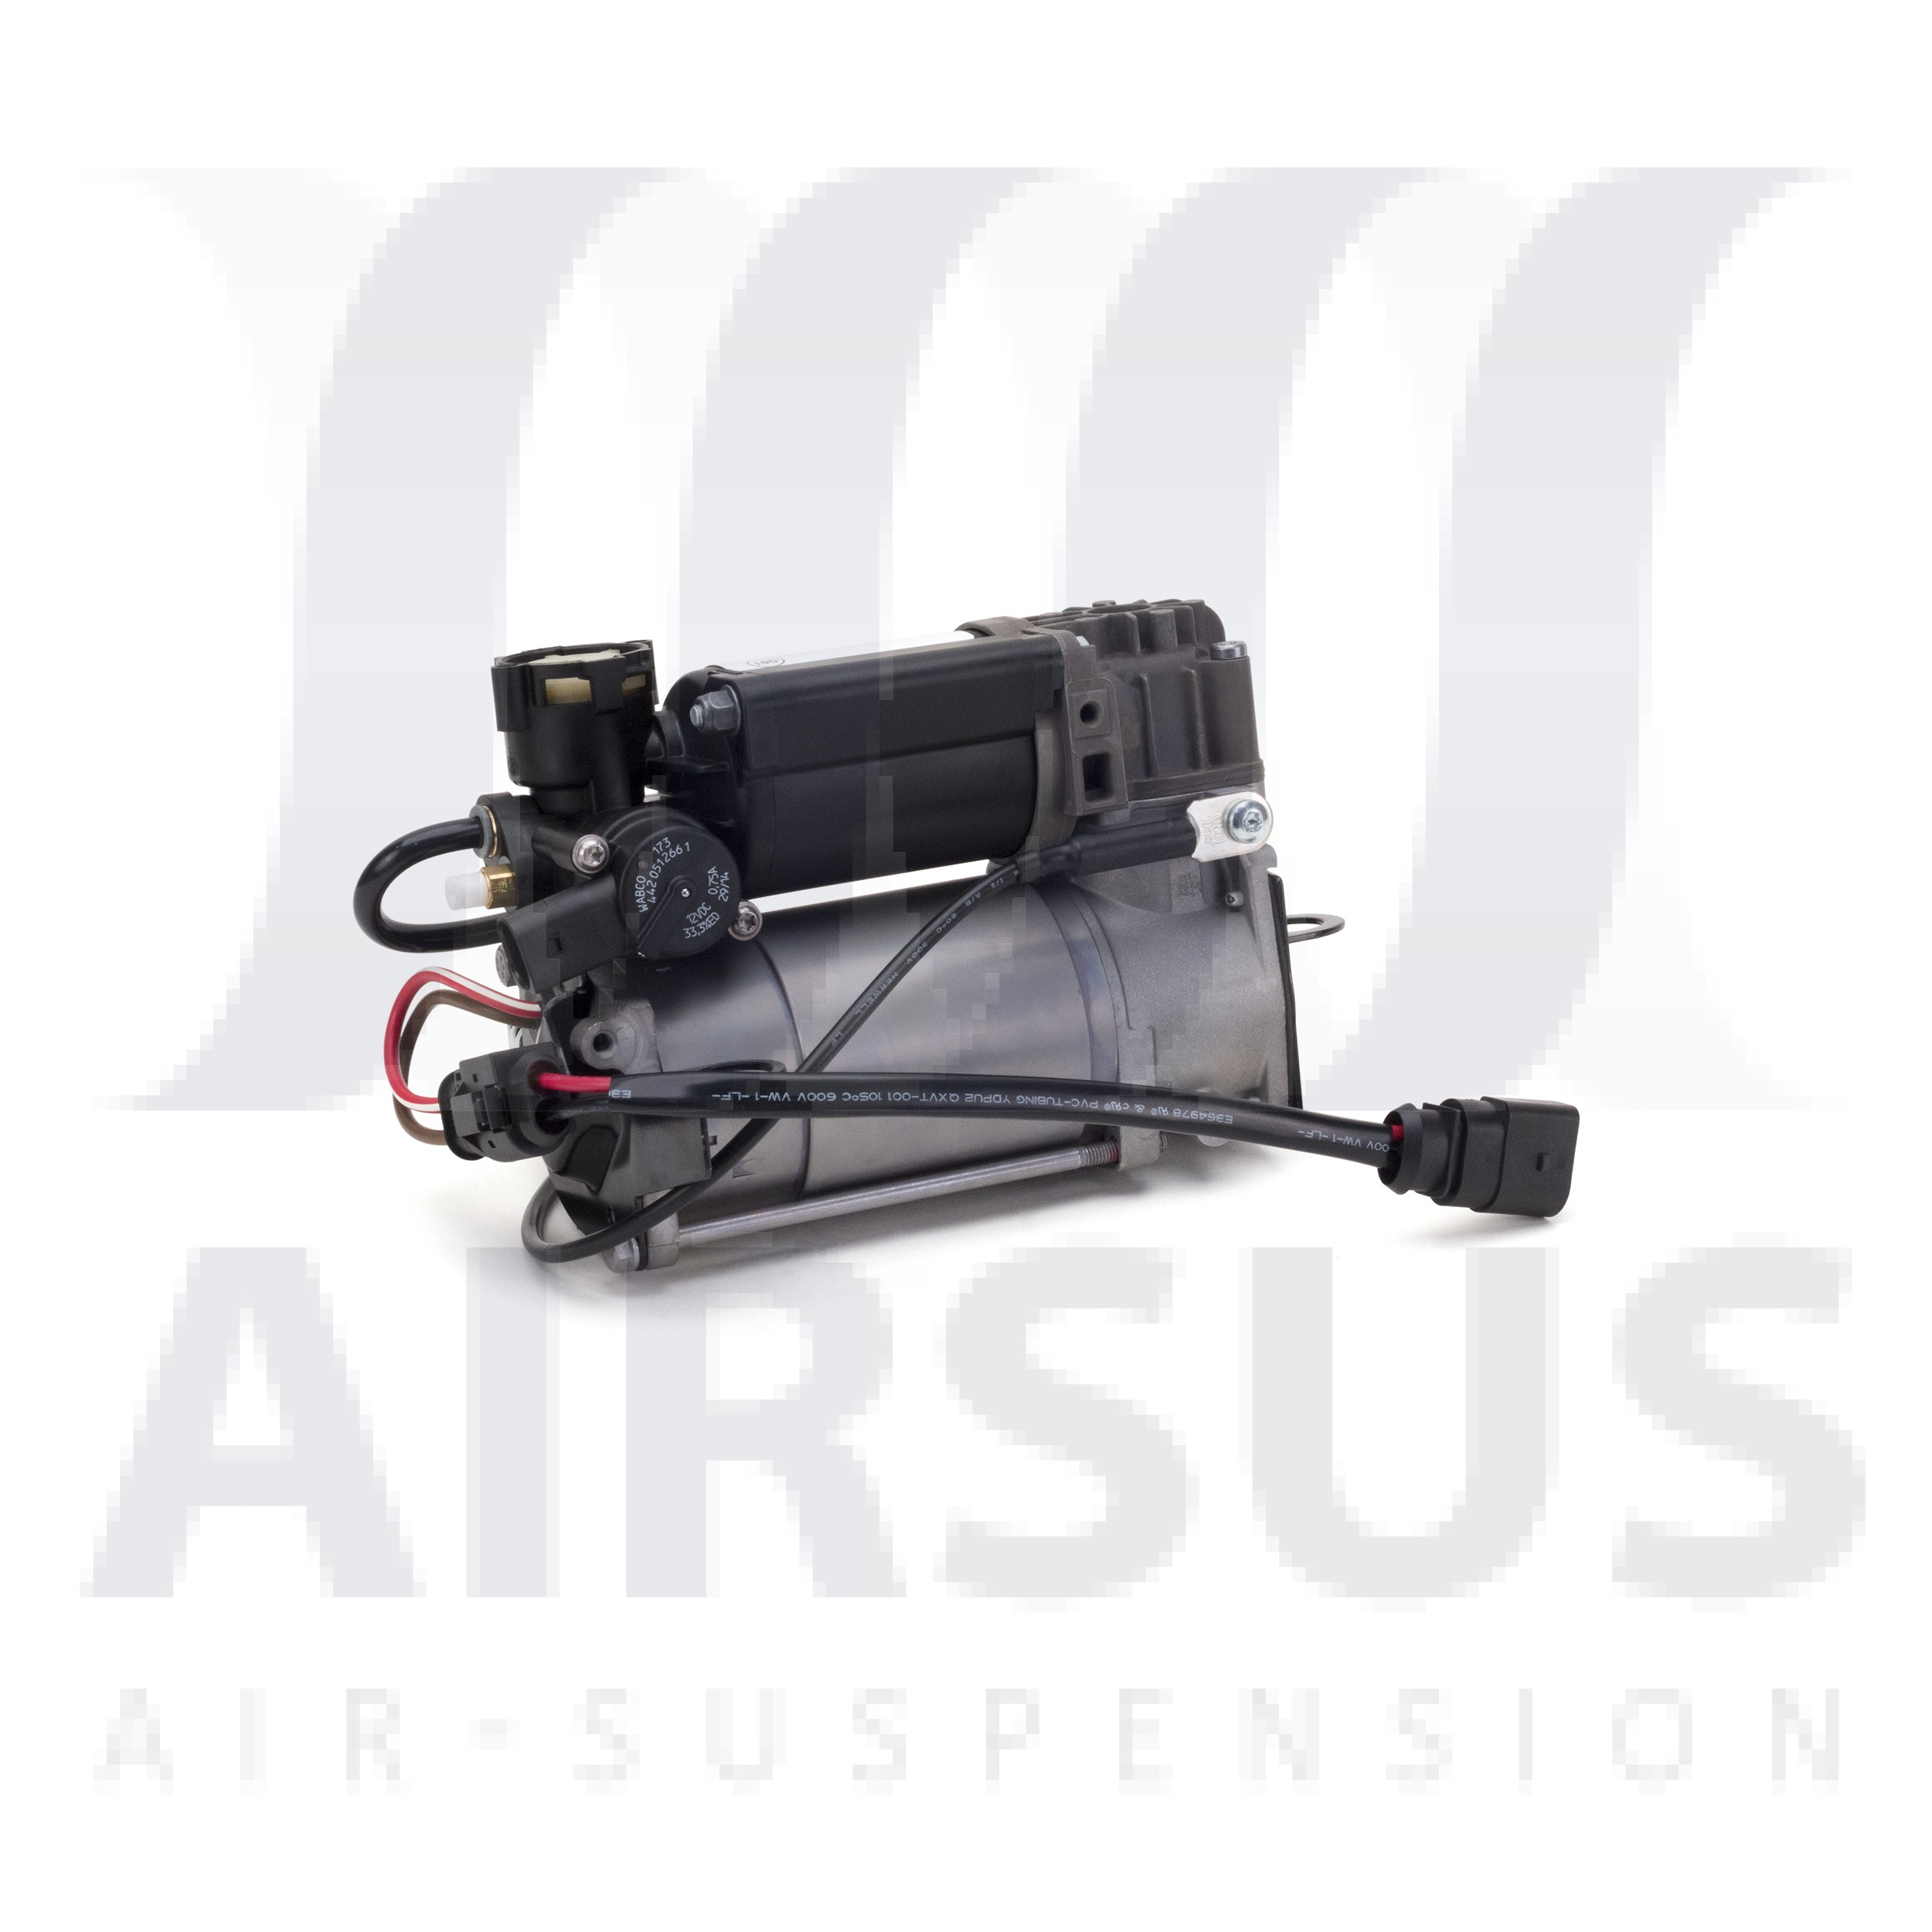 Audi A6 C5 4B Allroad WABCO Compresseur suspension pneumatique 4Z7616007B WABCO 4Z7616007B